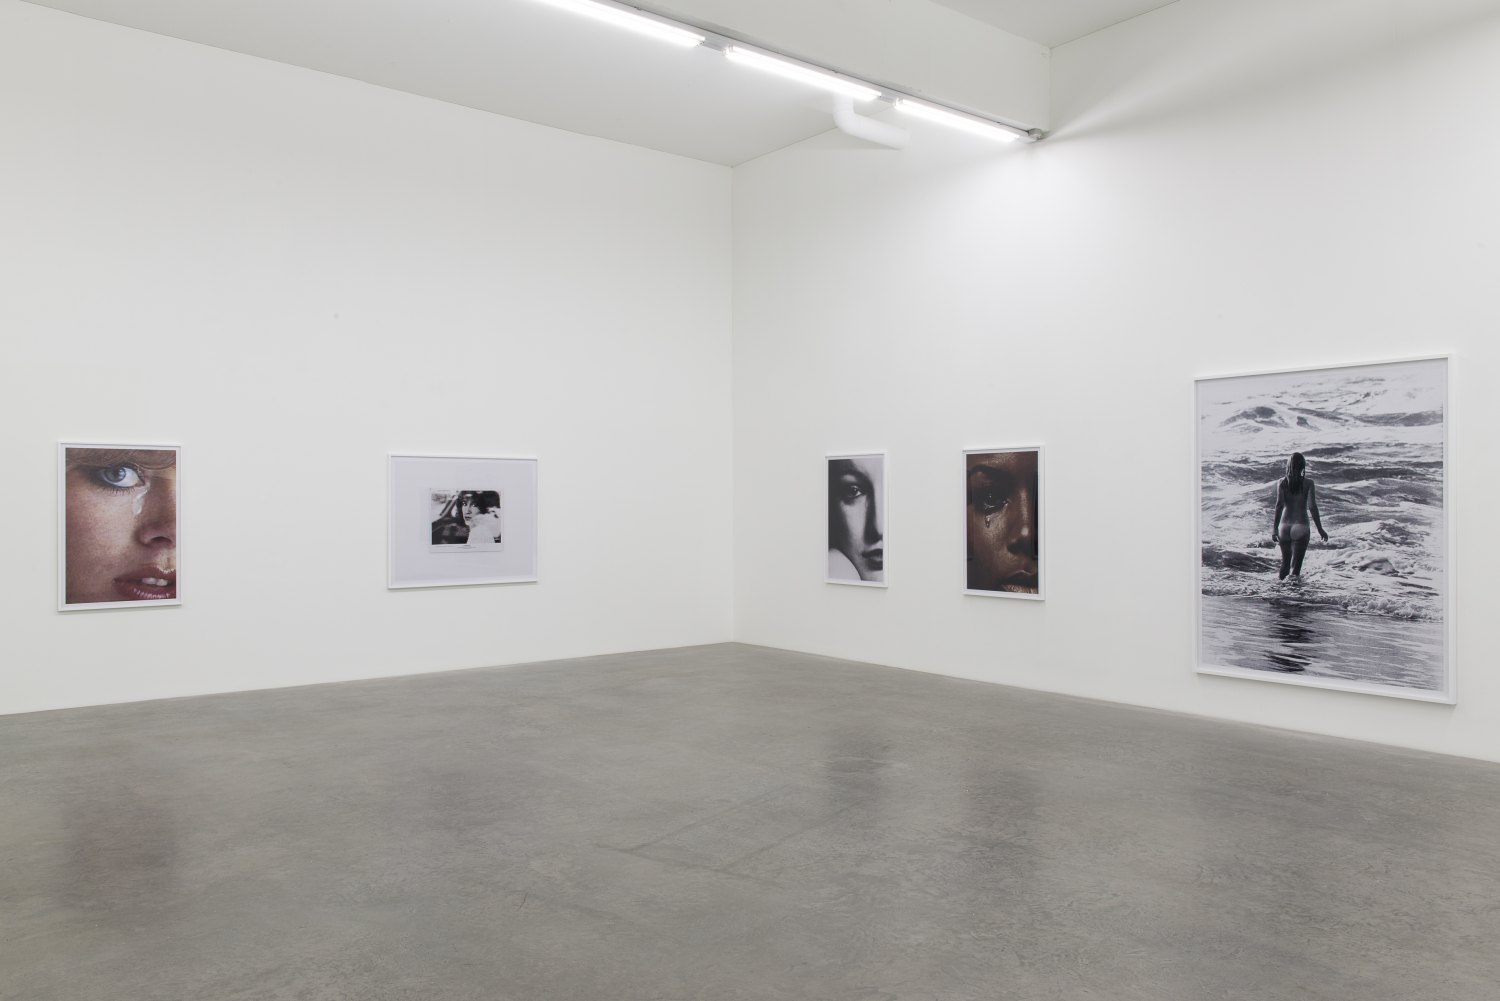 Anne Collier, installation view, Galerie Neu, Berlin 2016